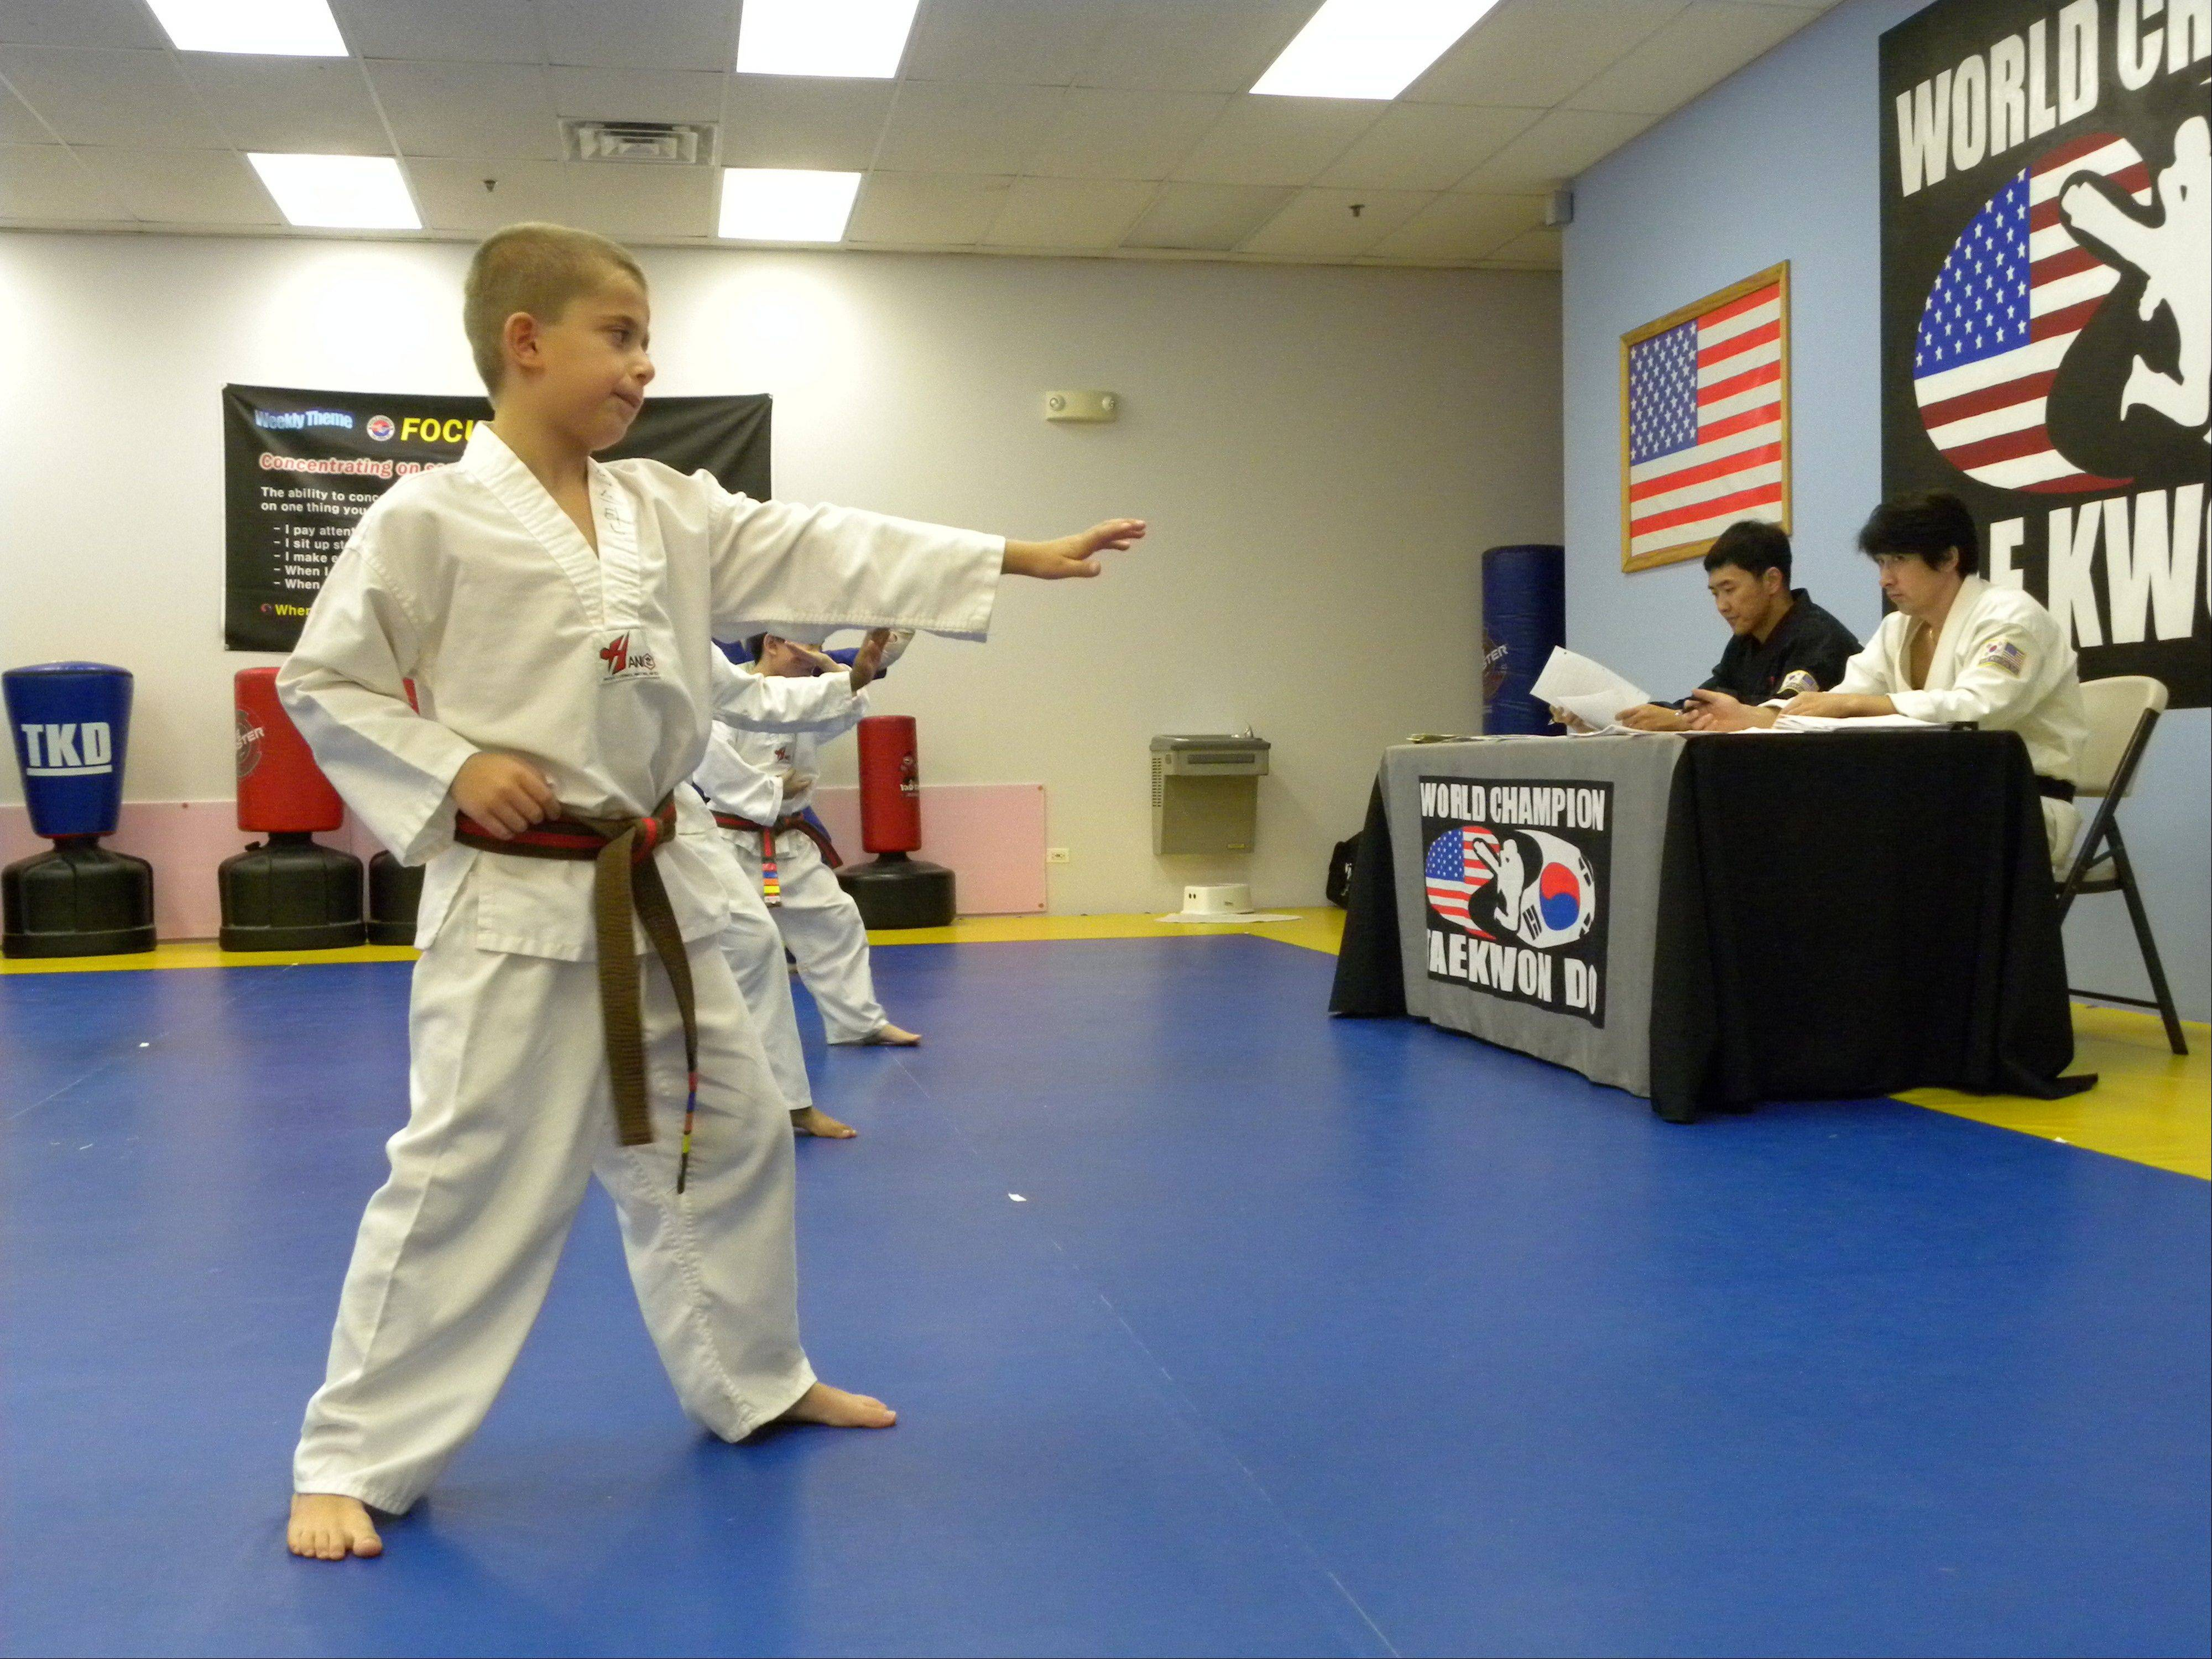 Justin Plackowska of Naperville quickly found success in tae kwon do, his instructor said. Justin was found murdered Tuesday night in Naperville along with a girl who lives nearby and who attended tae kwon do classes with Justin.